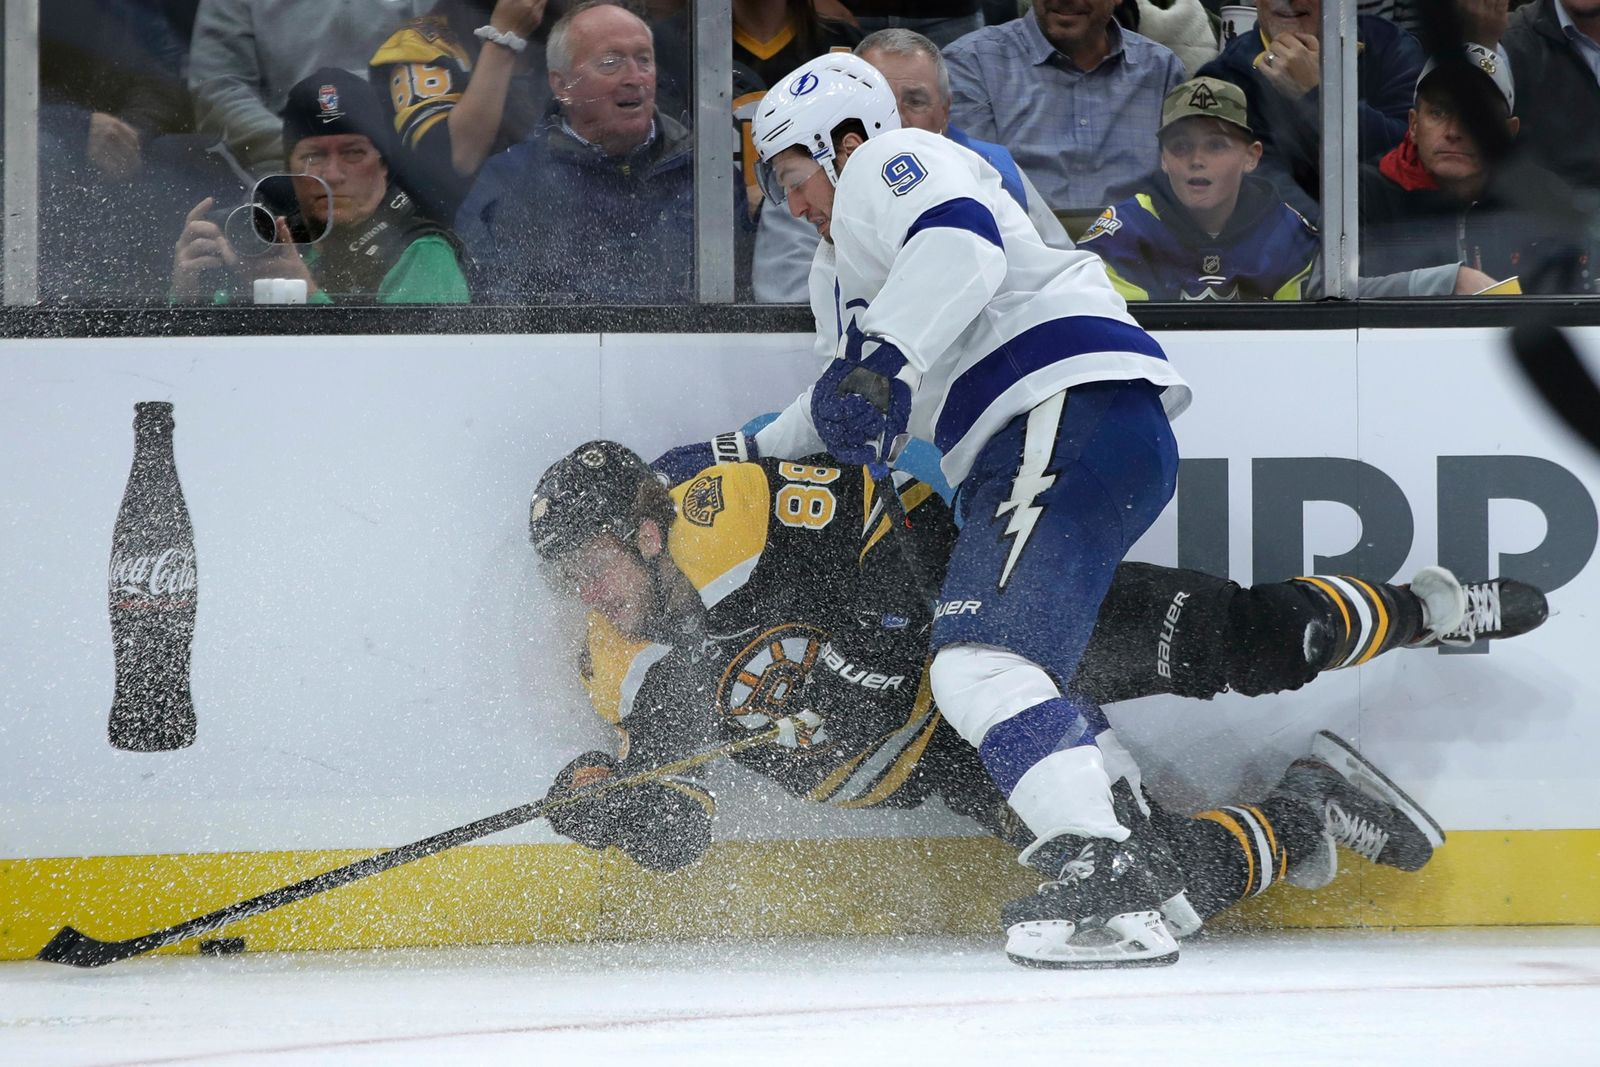 Boston Bruins right wing David Pastrnak (88) competes for the puck with Tampa Bay Lightning center Tyler Johnson (9) along the boards during the first period of an NHL hockey game Thursday, Oct. 17, 2019, in Boston. (AP Photo/Elise Amendola)